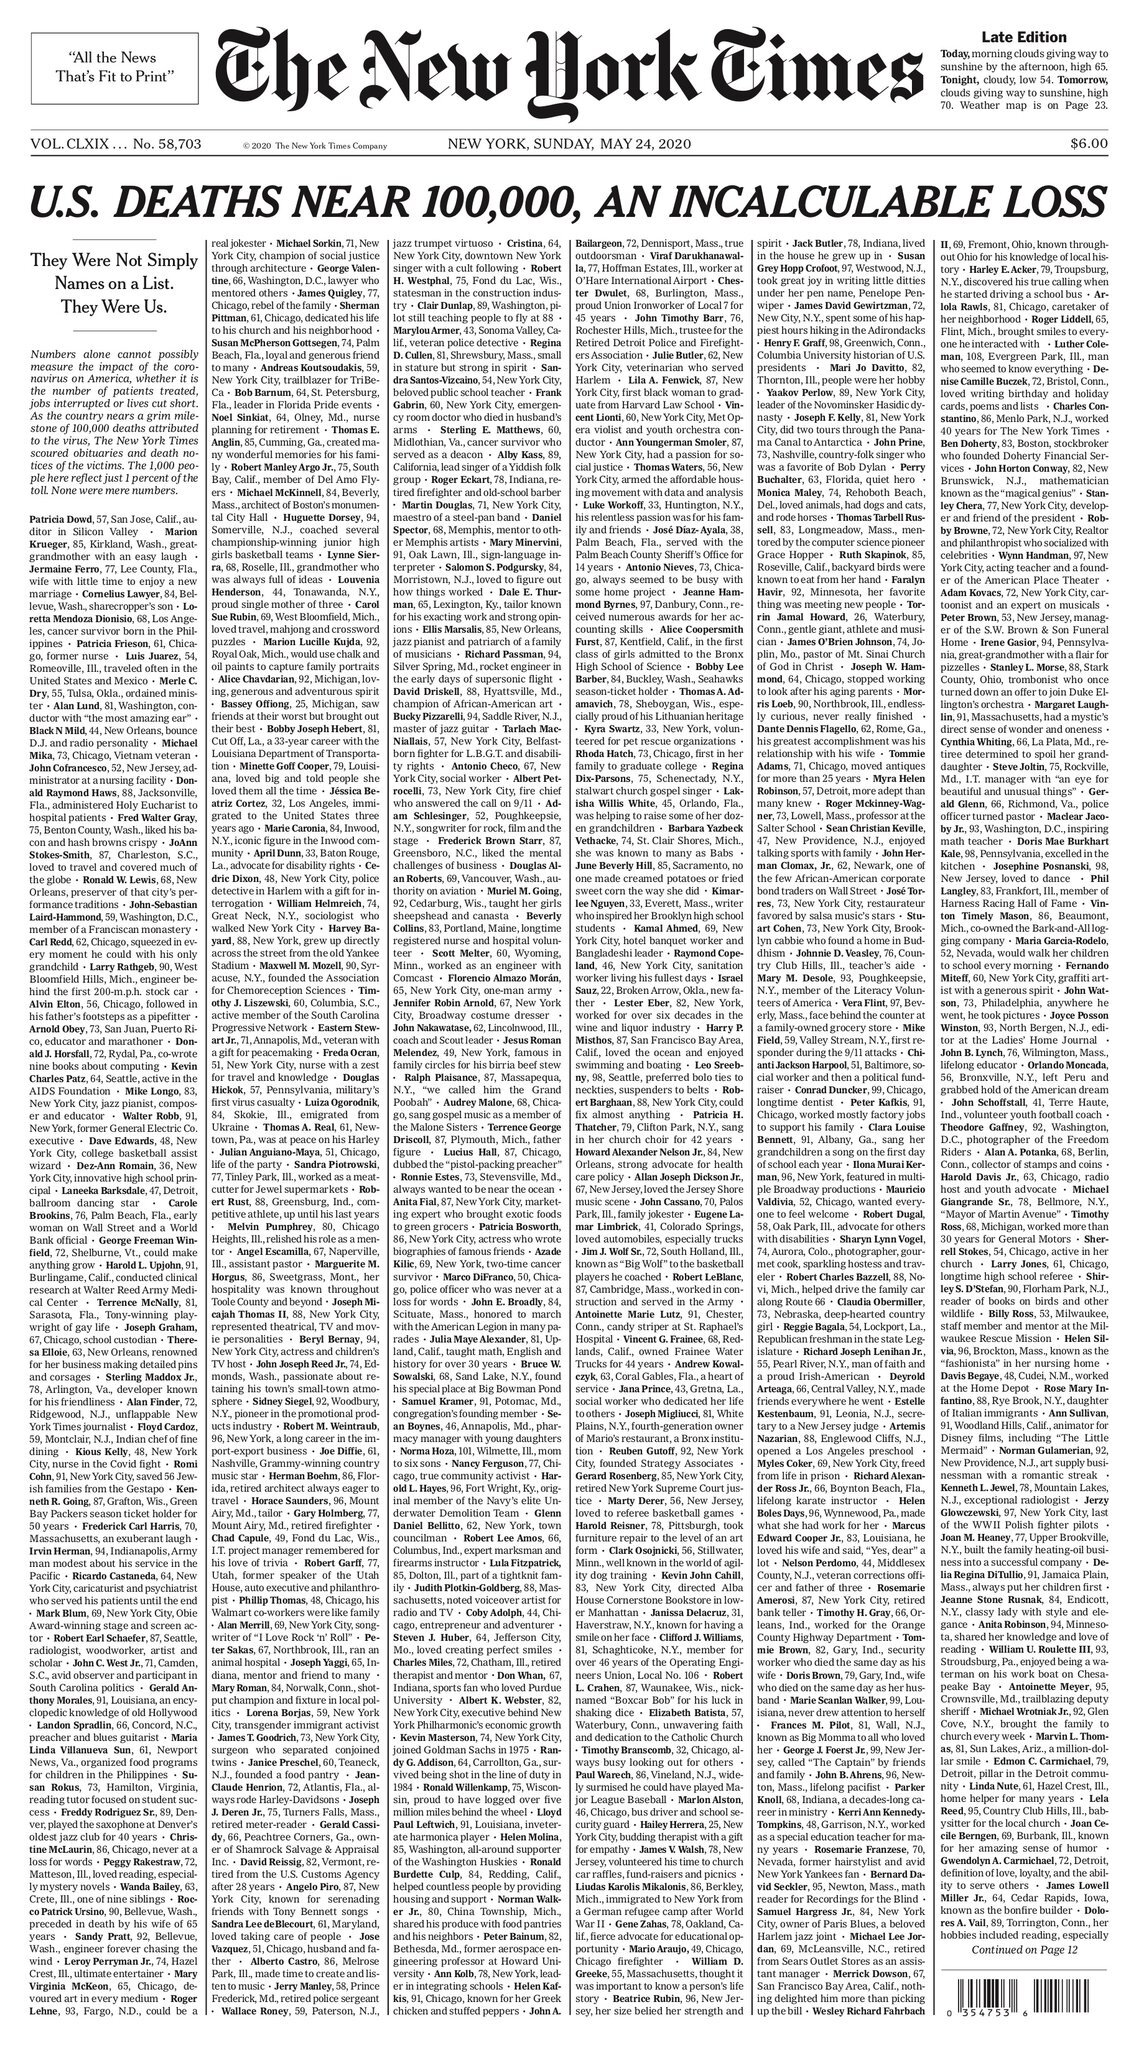 The front page of The New York Times for May 24, 2020